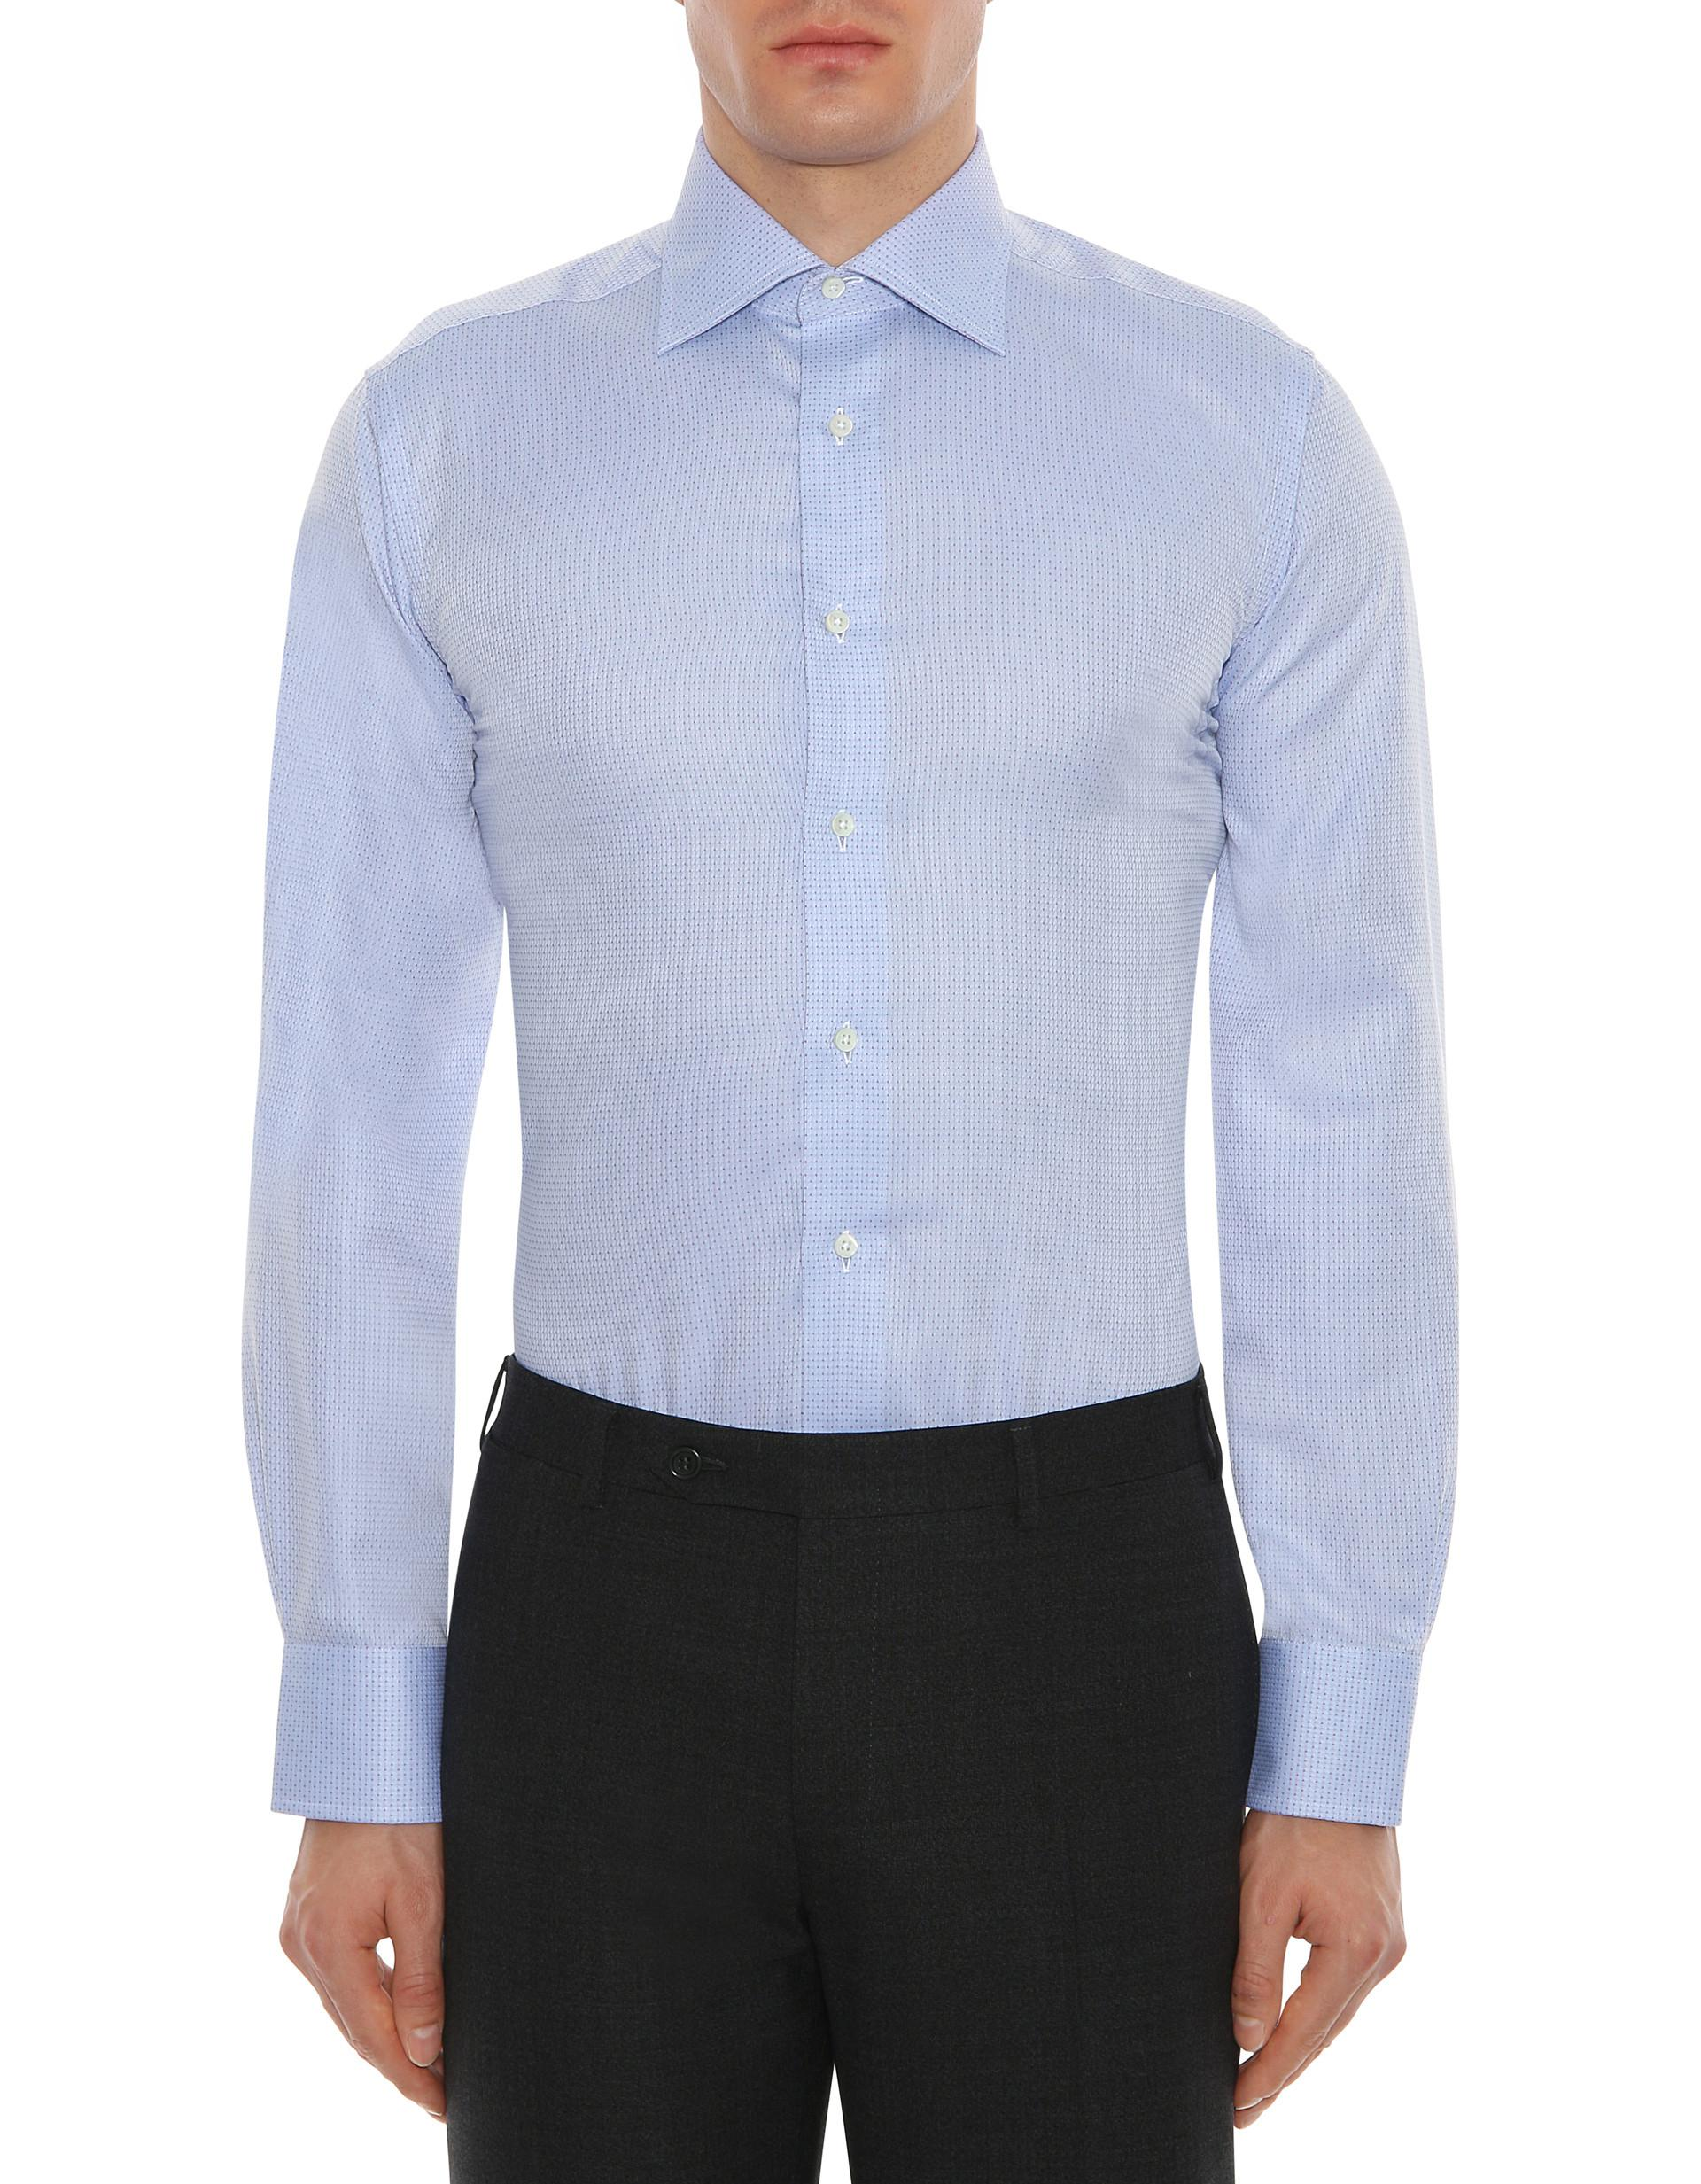 Lyst Canali Light Blue Impeccabile Cotton Dress Shirt With Red Pin